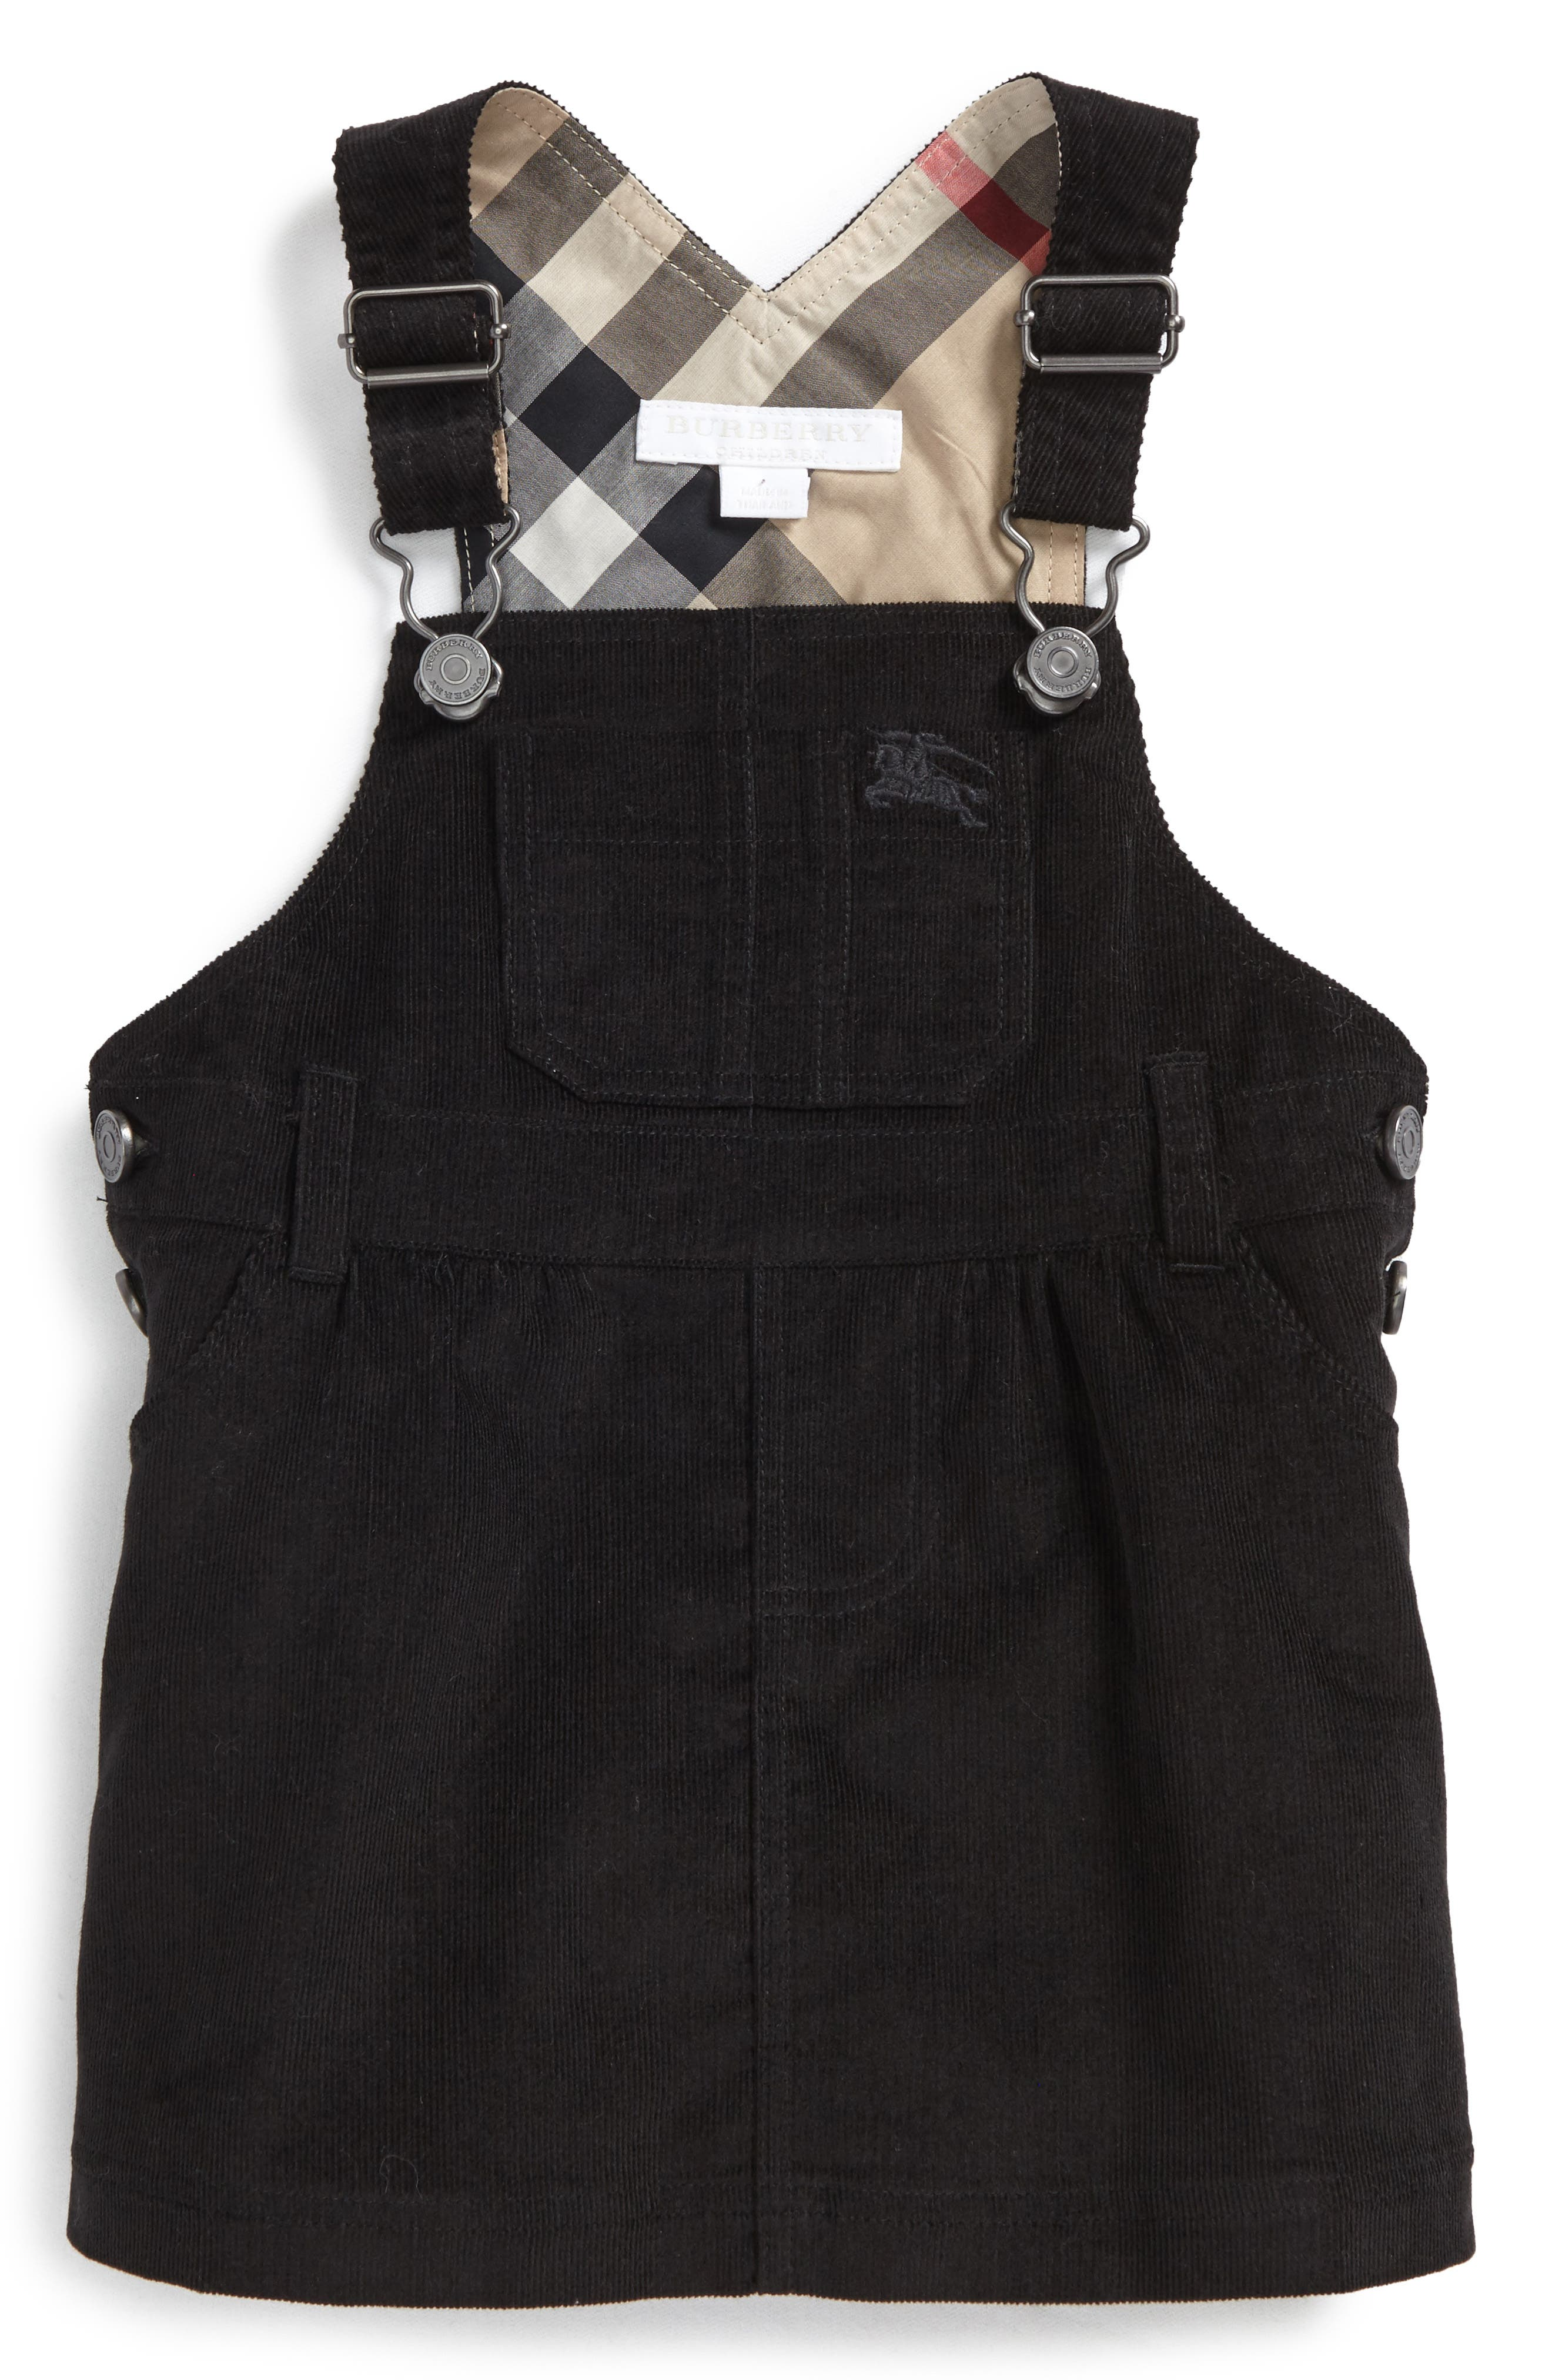 Burberry Wilma Overalls Dress (Baby Girl)